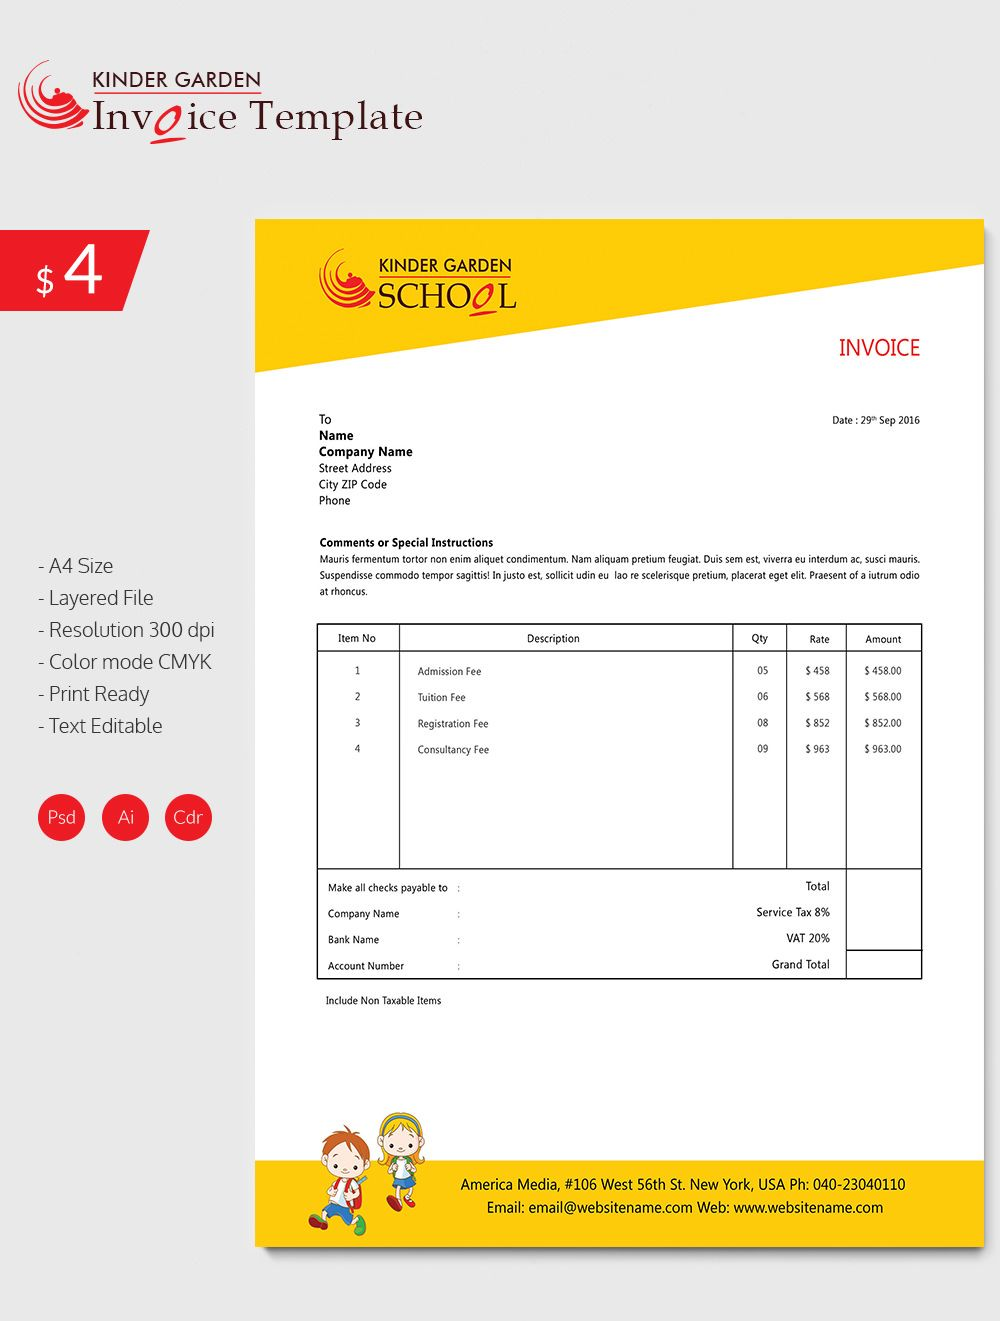 Perfect Creative Invoice Template Free To Do List Pertaining To Invoice Template Pdf Free Download